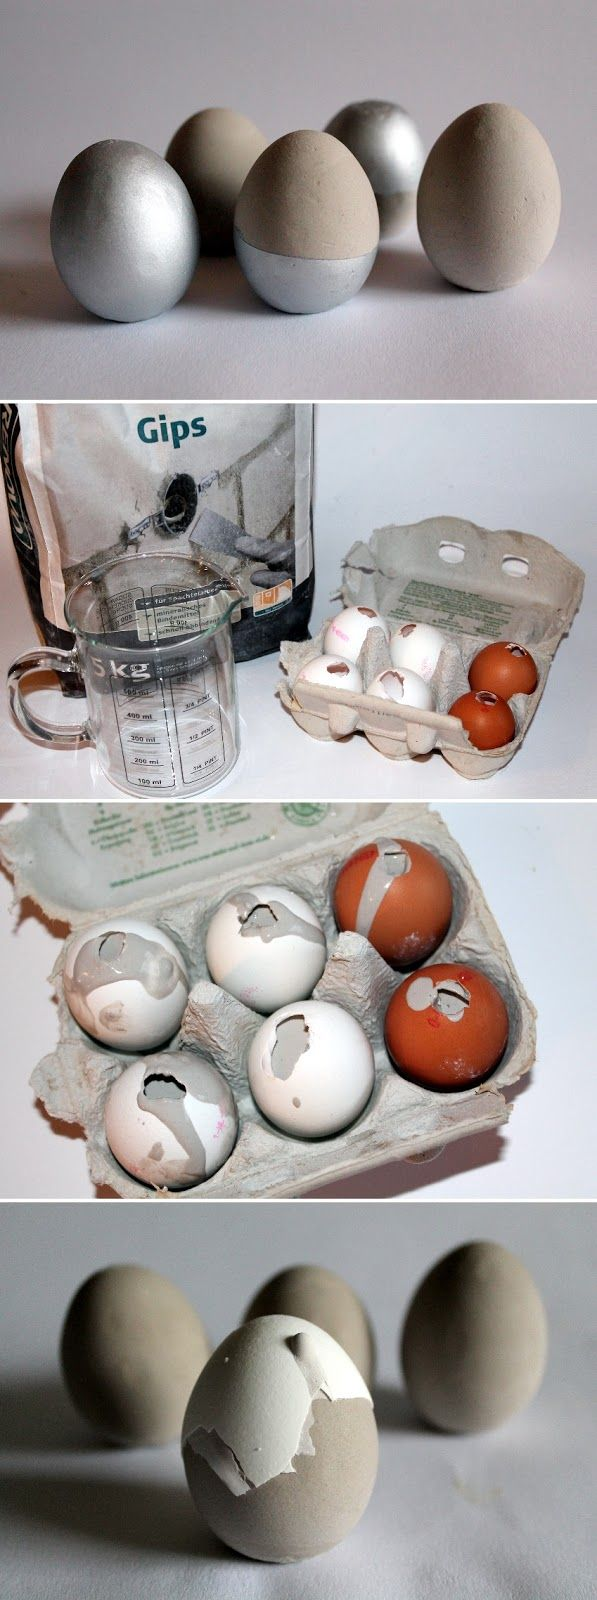 DIY Plaster / Concrete Eggs Make Easter decoration yourself